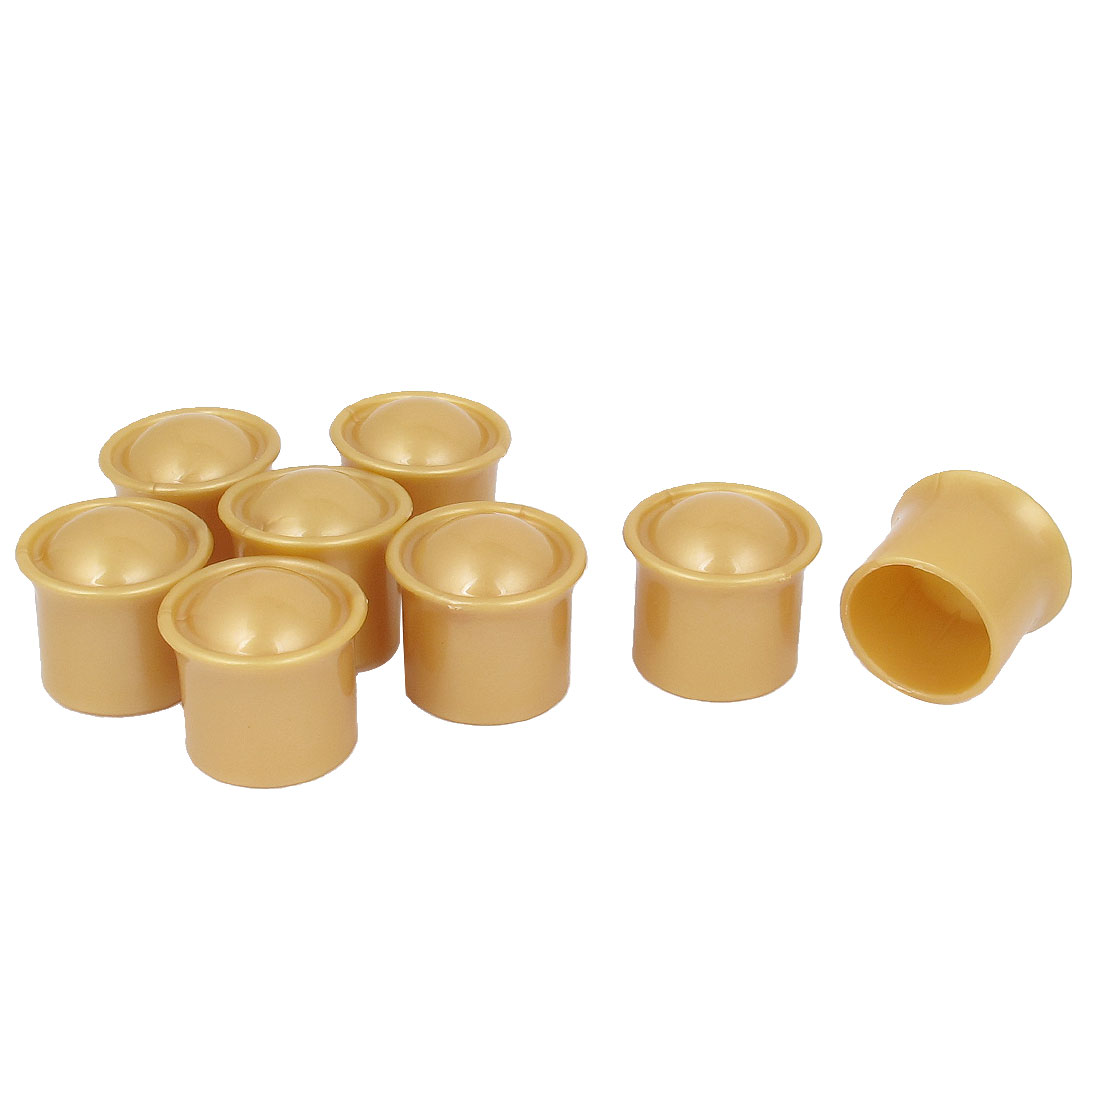 8 Pcs Gold Tone Plastic Drapery Curtain Rod Ends Caps for 28mm Poles